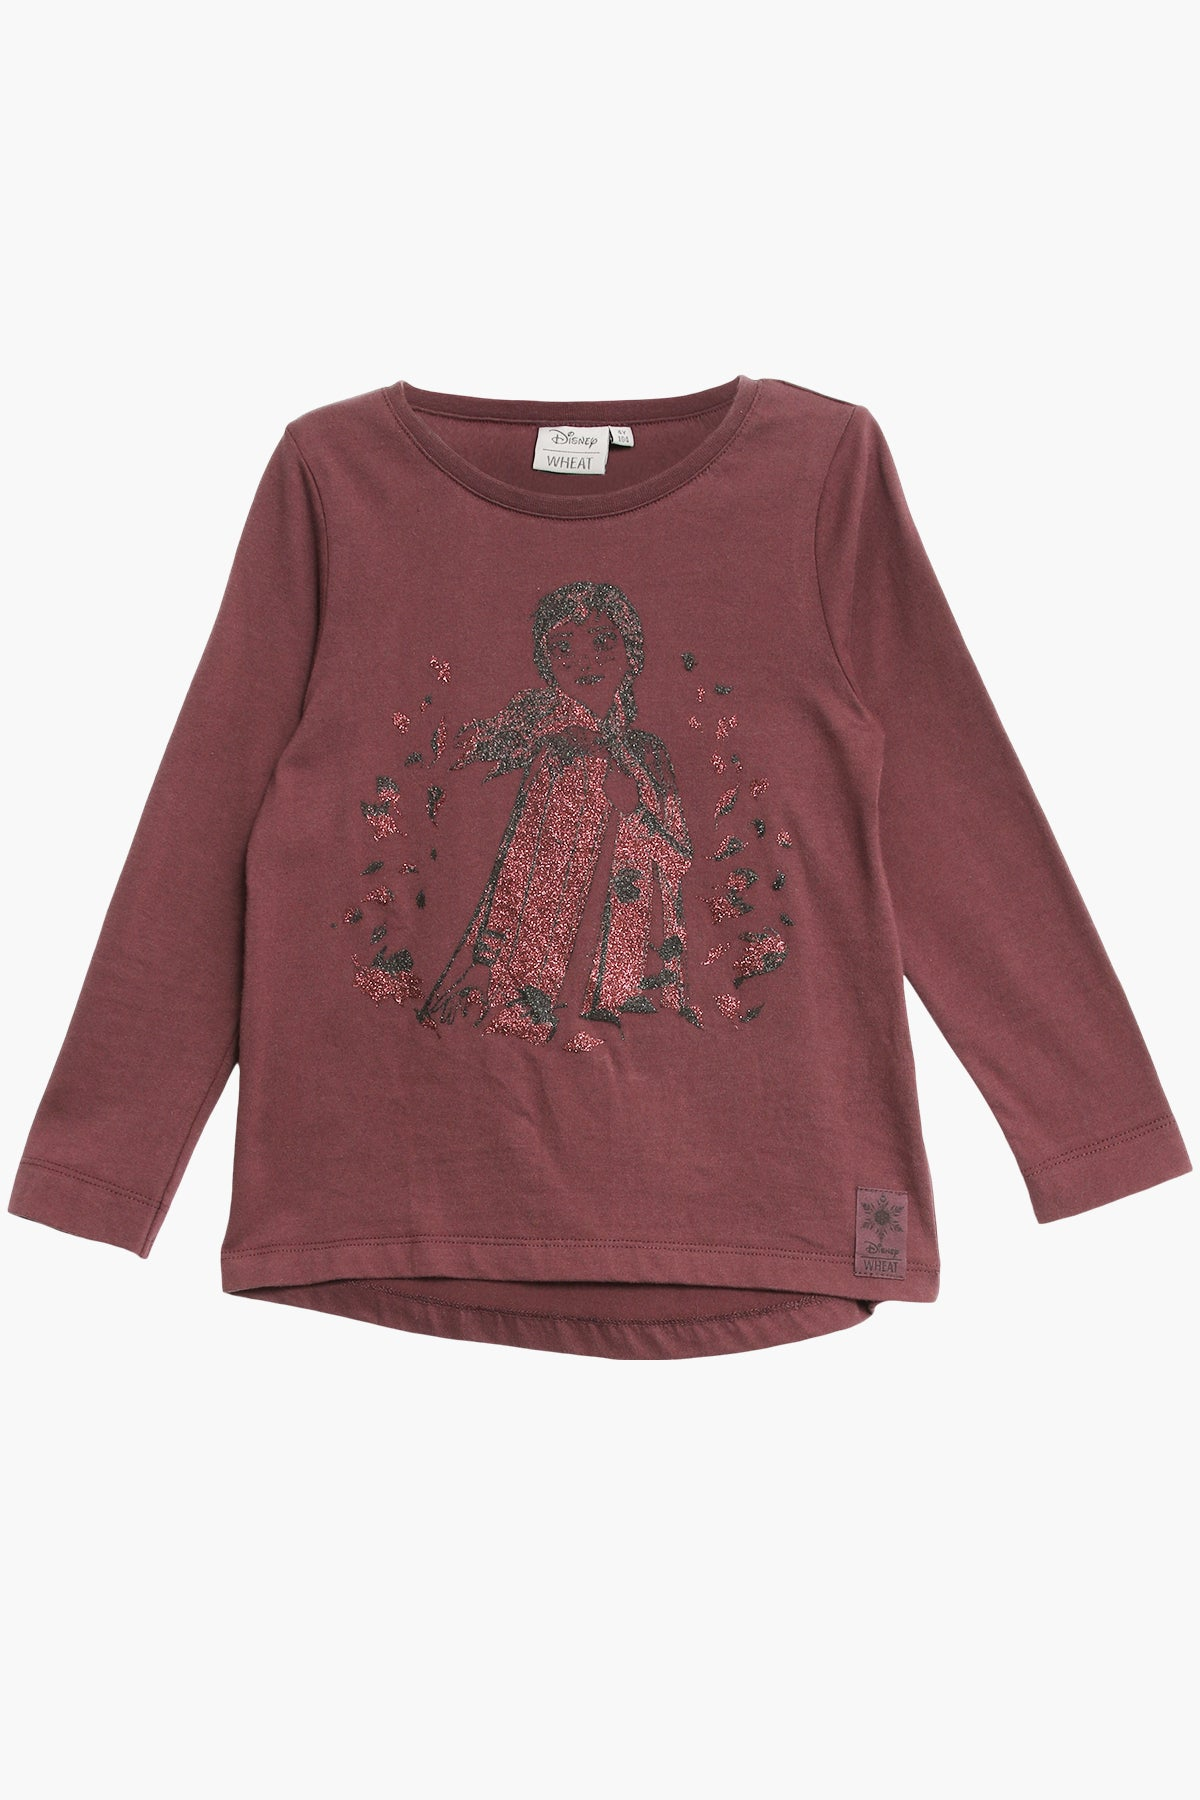 Wheat Disney Frozen Anna Girls T-Shirt